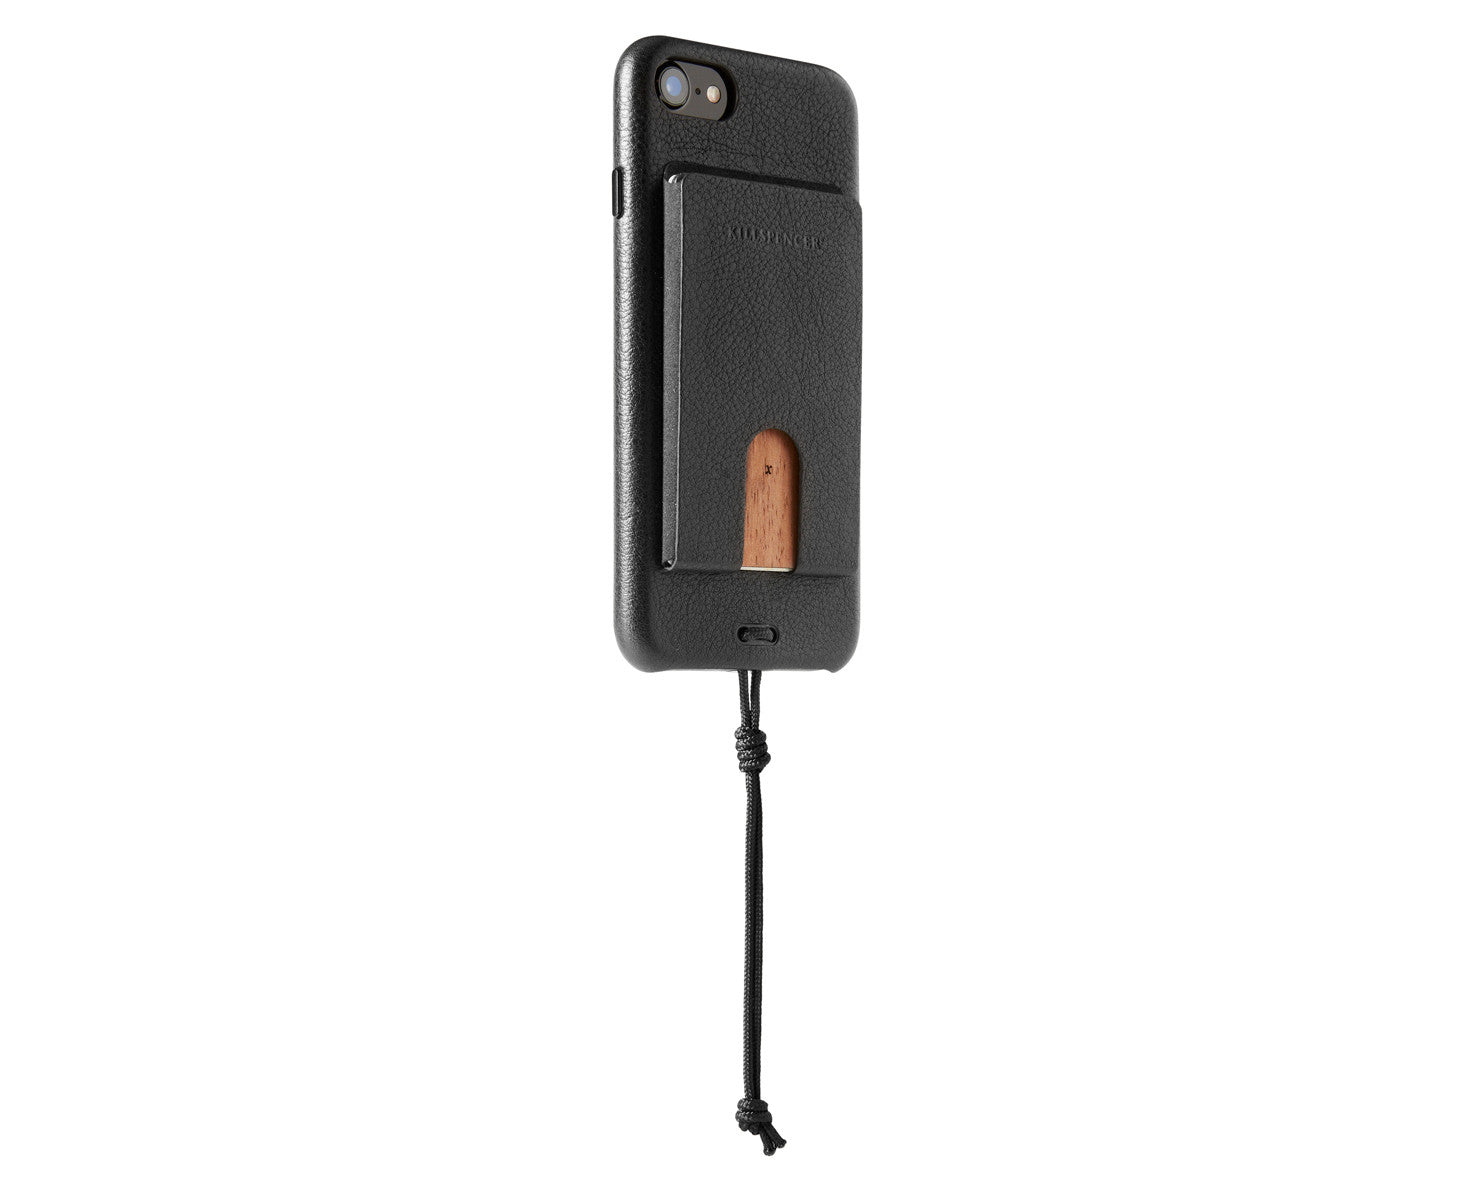 CARD CARRIER 3.0 for iPhone 7 and iPhone 8 | KILLSPENCER® - Black Leather